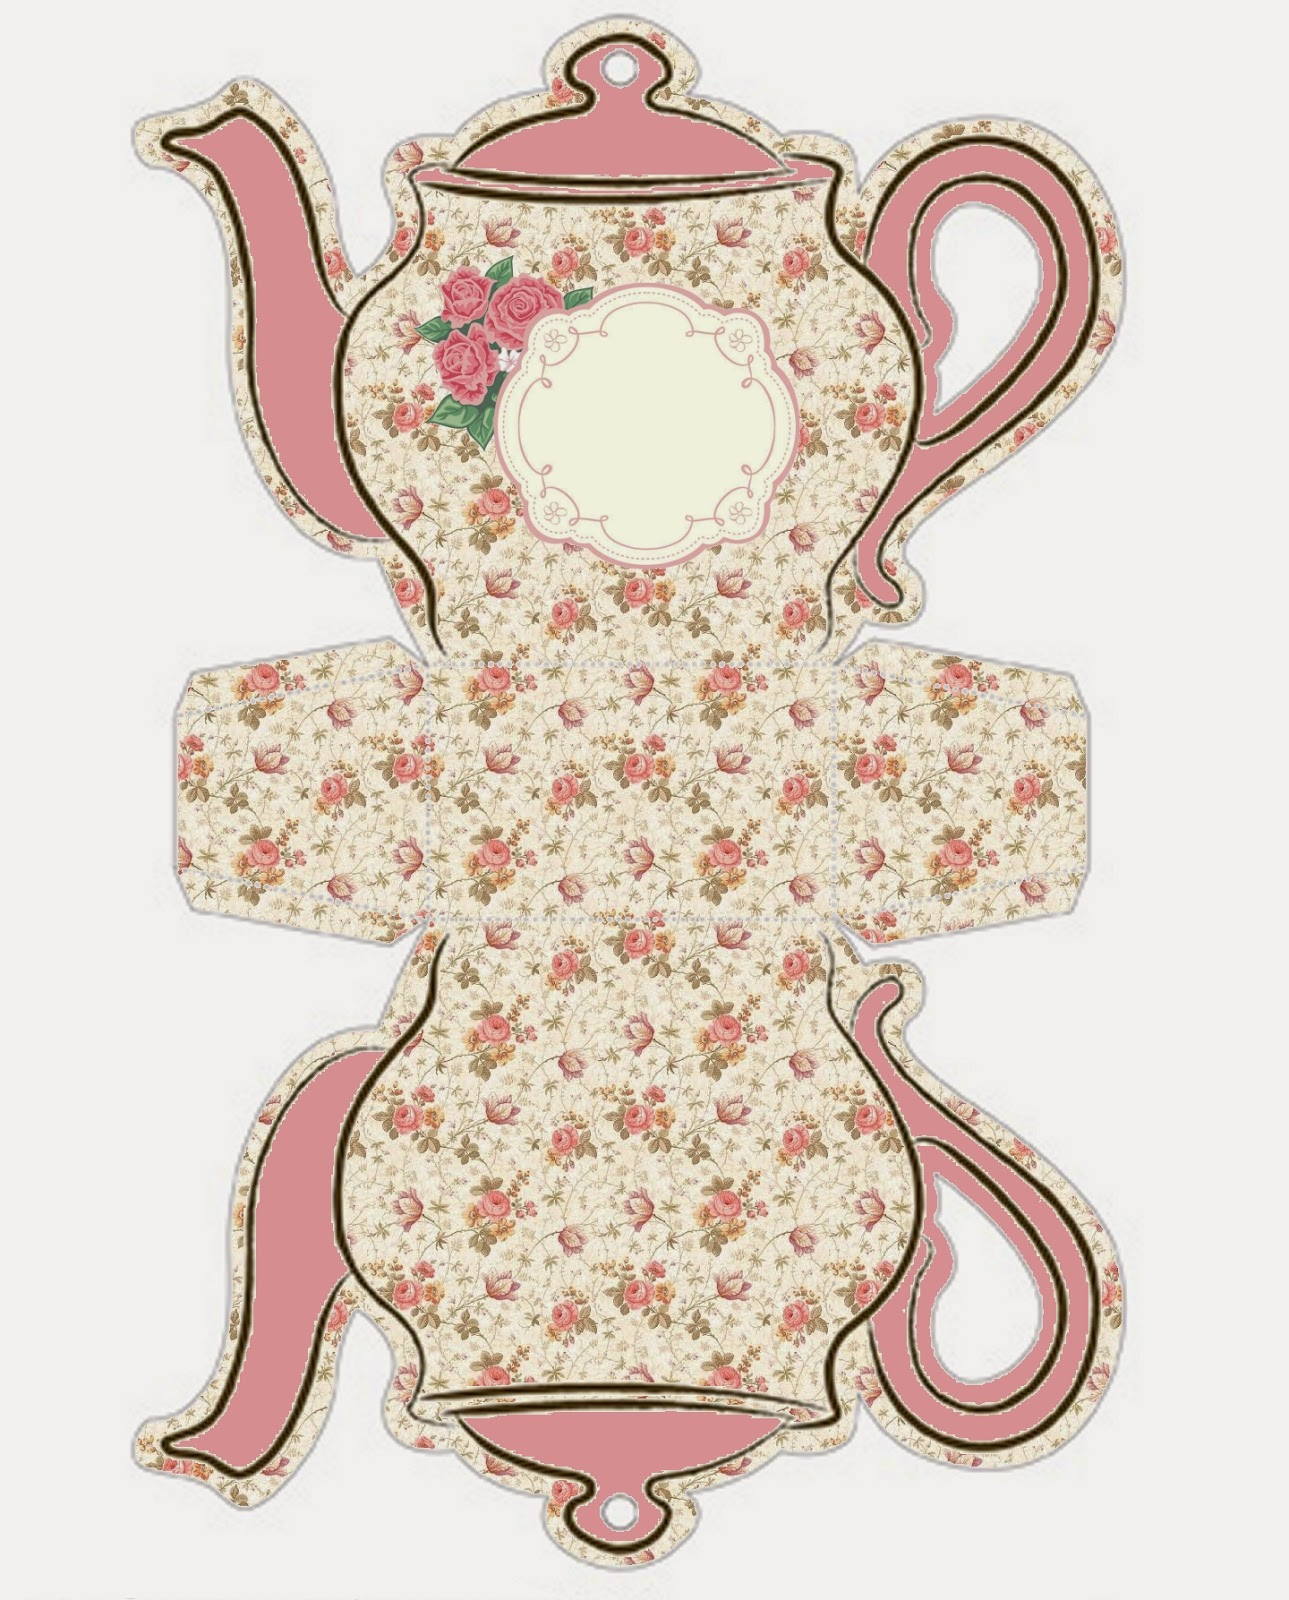 image about Teapot Template Printable referred to as Shabby Stylish Teapot Cost-free Printable Packing containers. - Oh My Fiesta! inside of